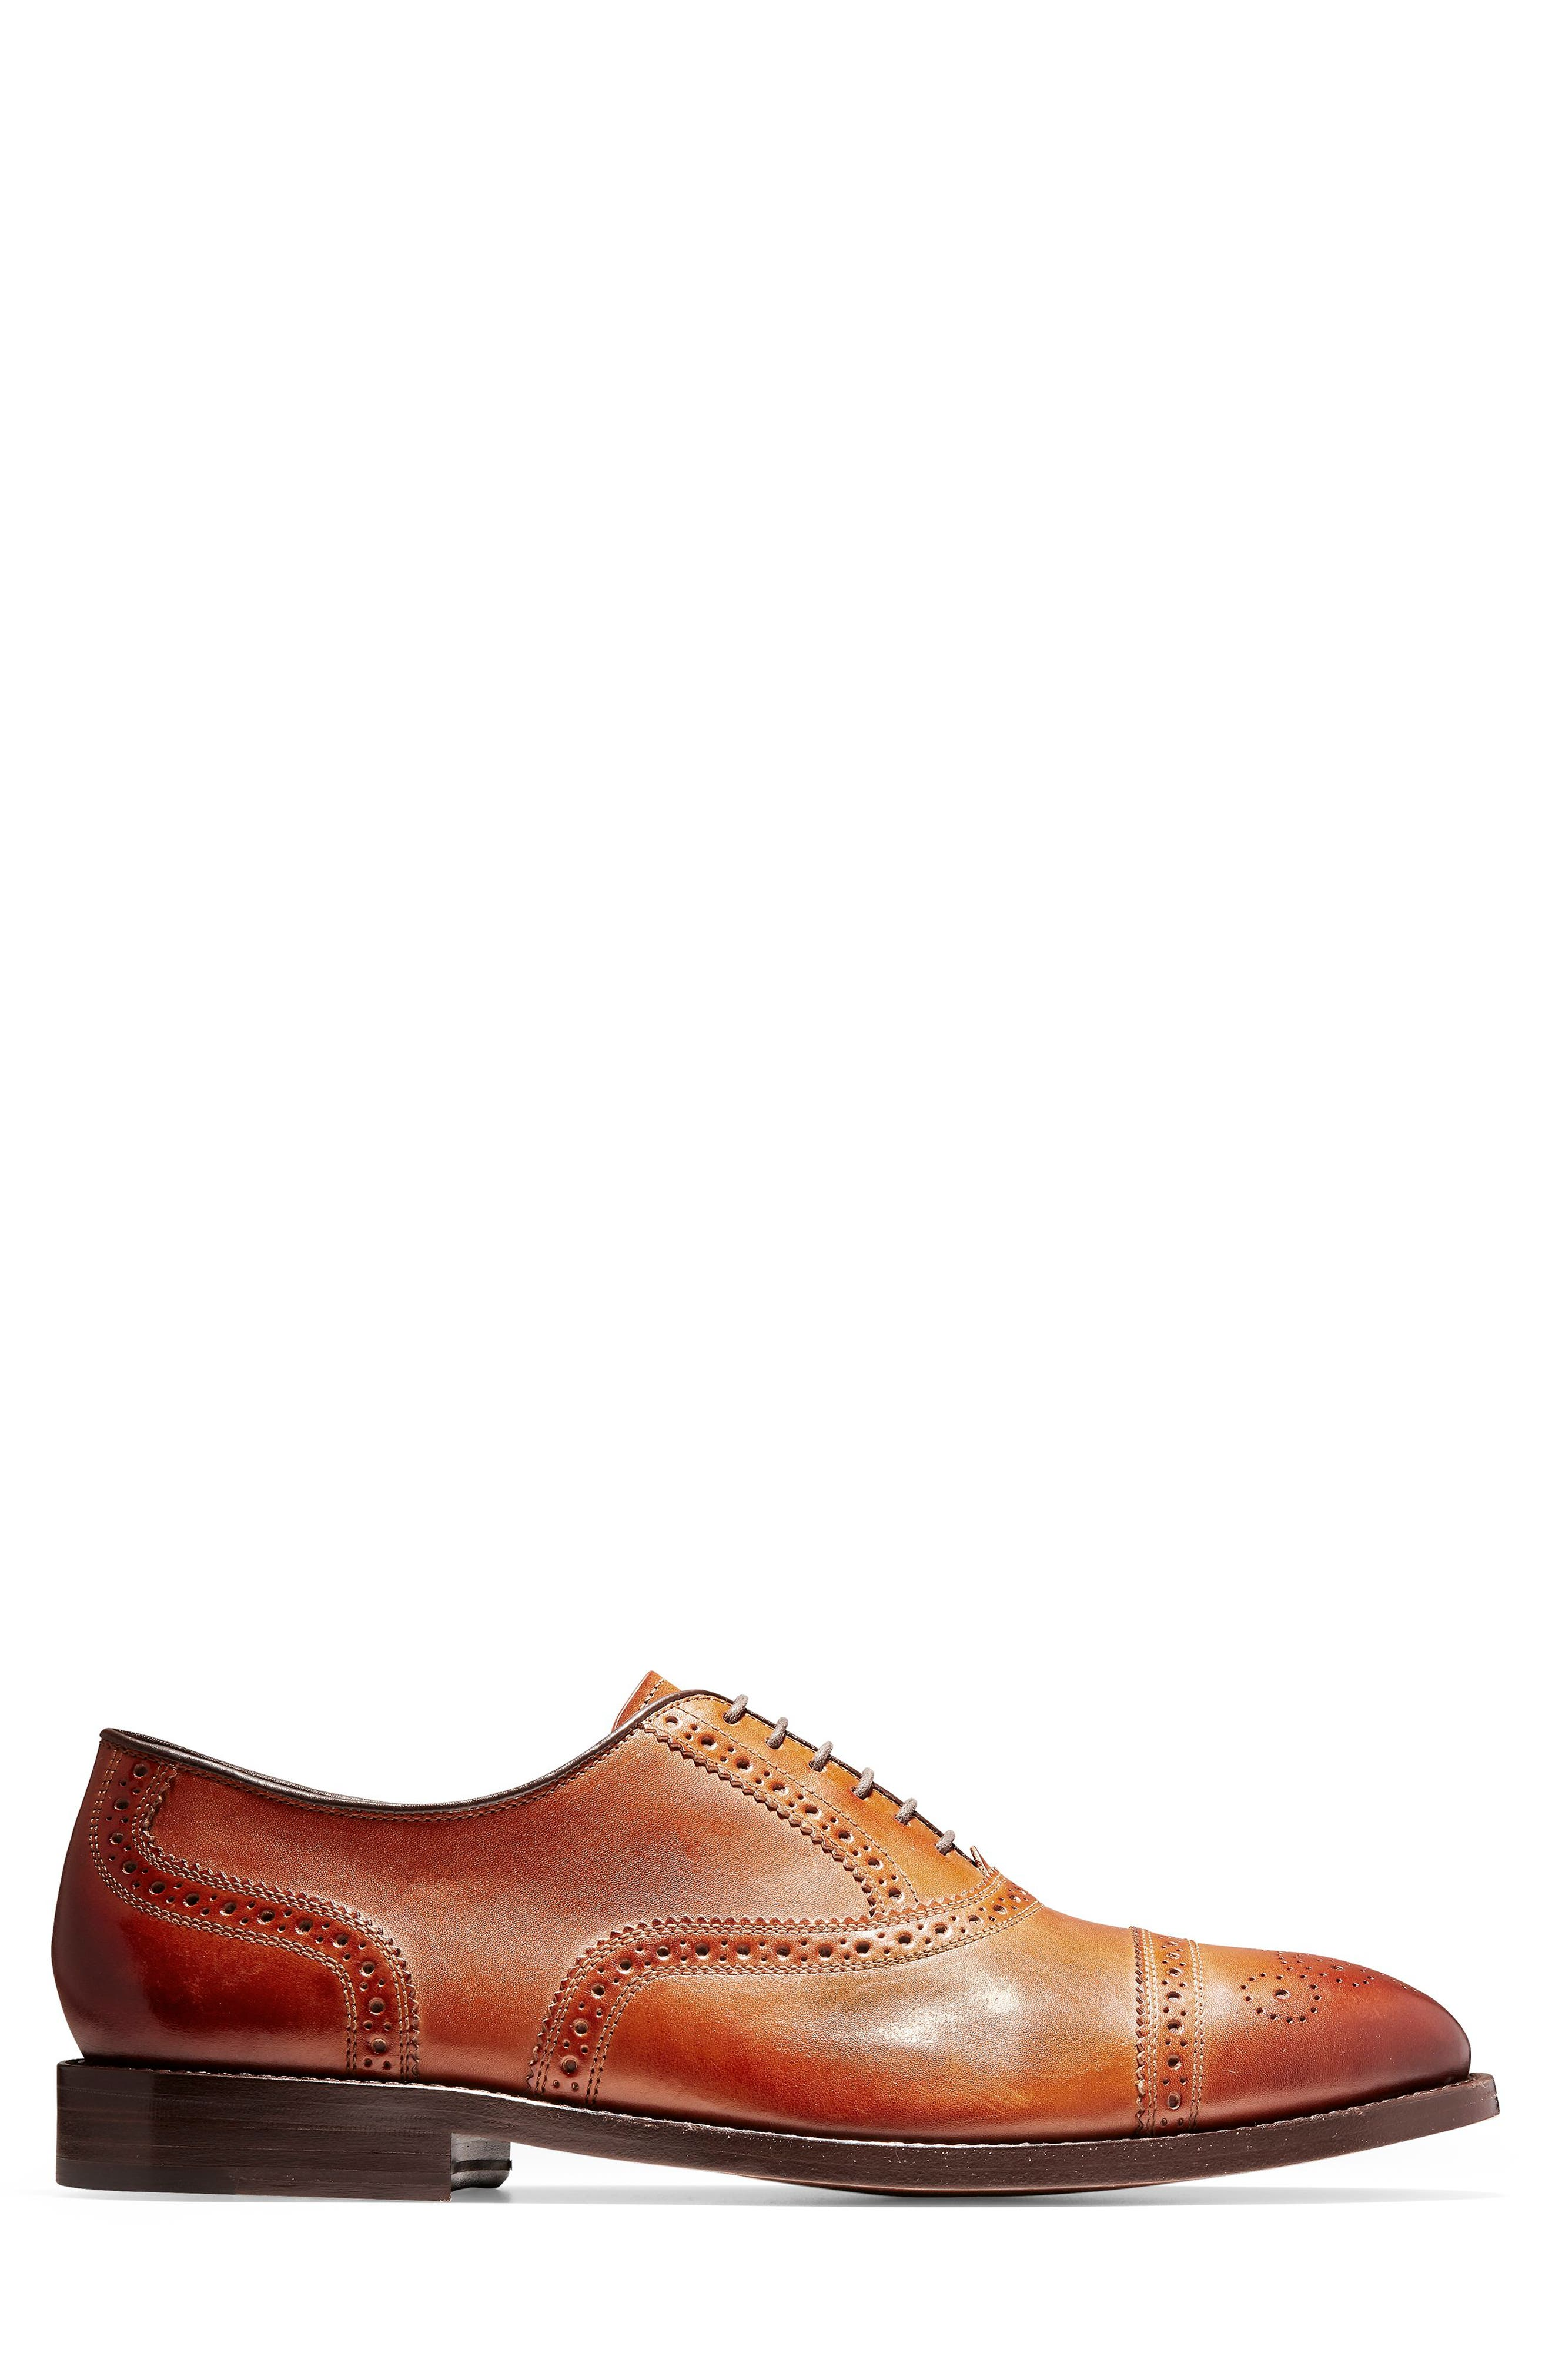 COLE HAAN, American Classics Kneeland Cap Toe Oxford, Alternate thumbnail 3, color, BRITISH TAN LEATHER